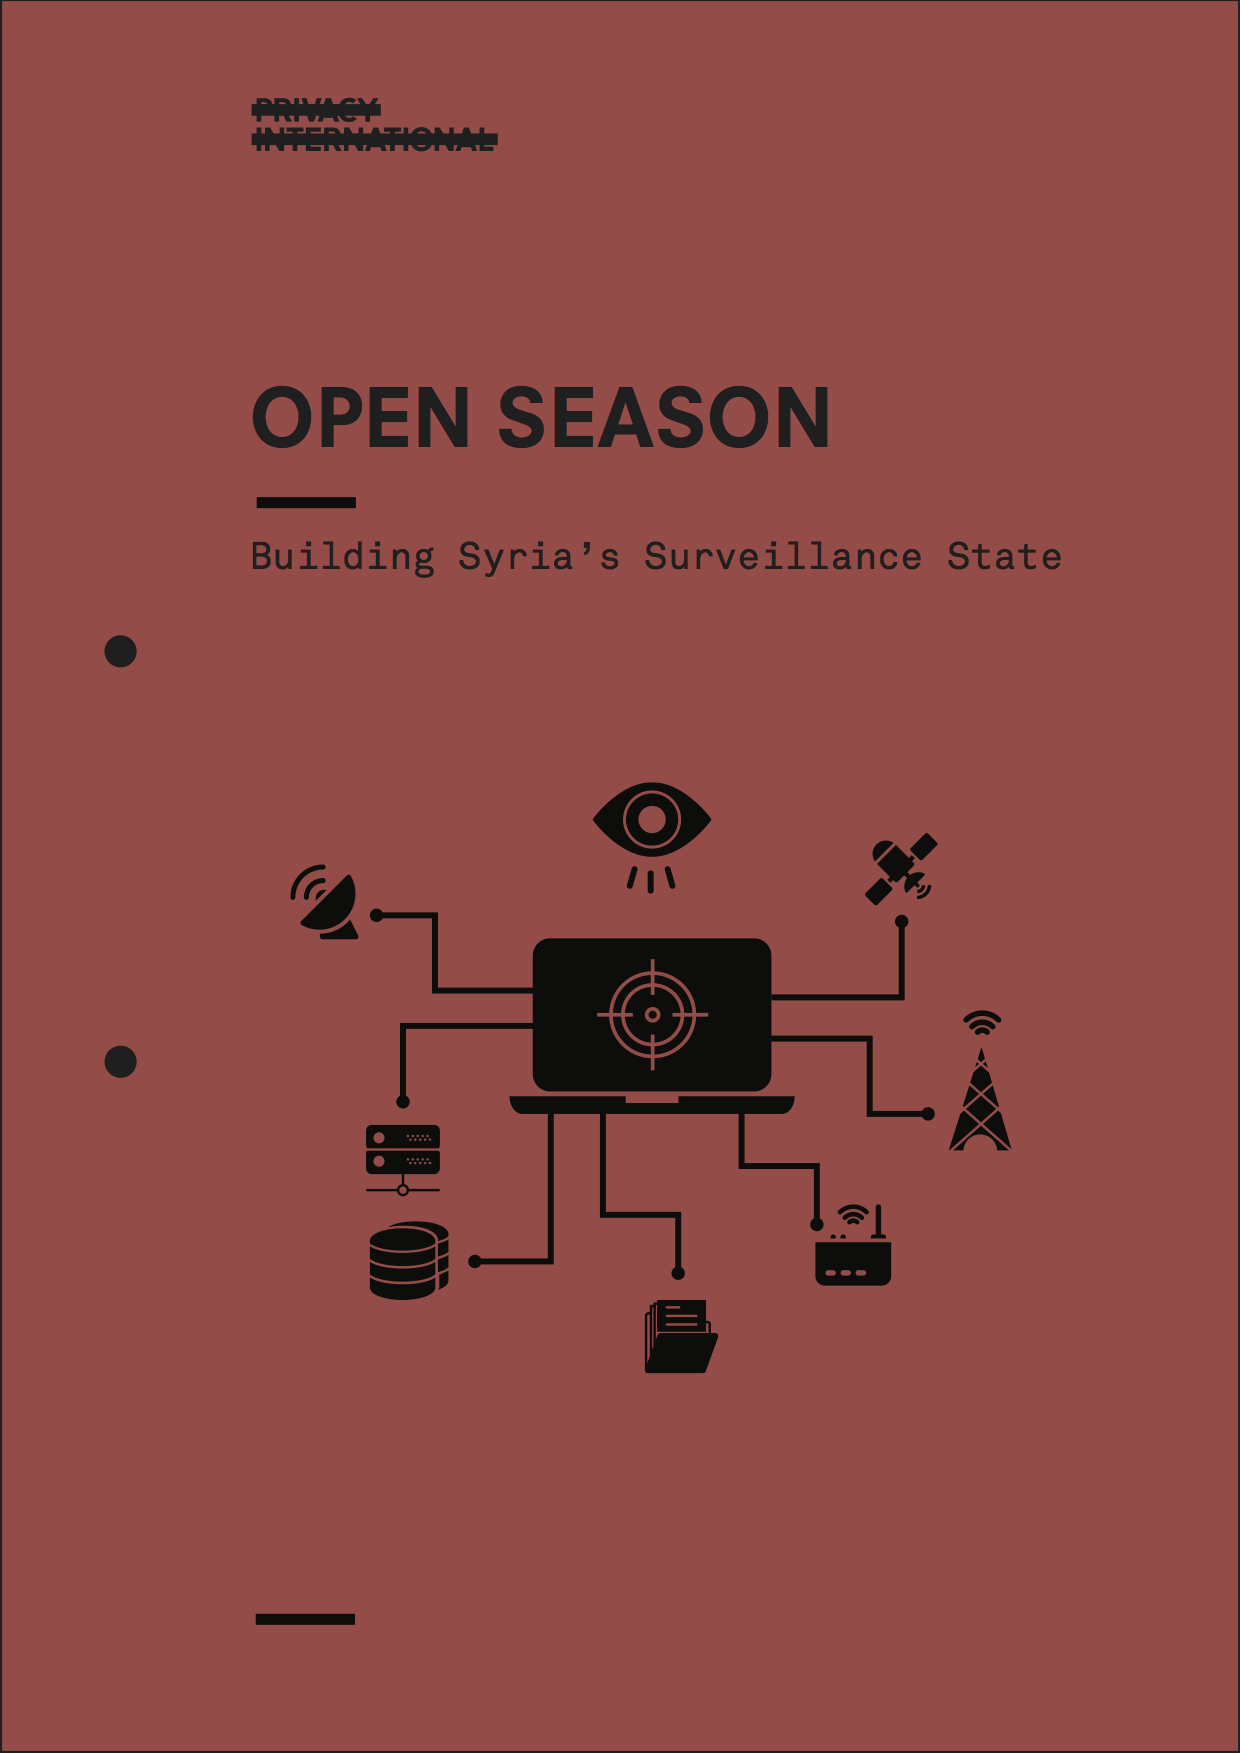 Syria Open Season report cover